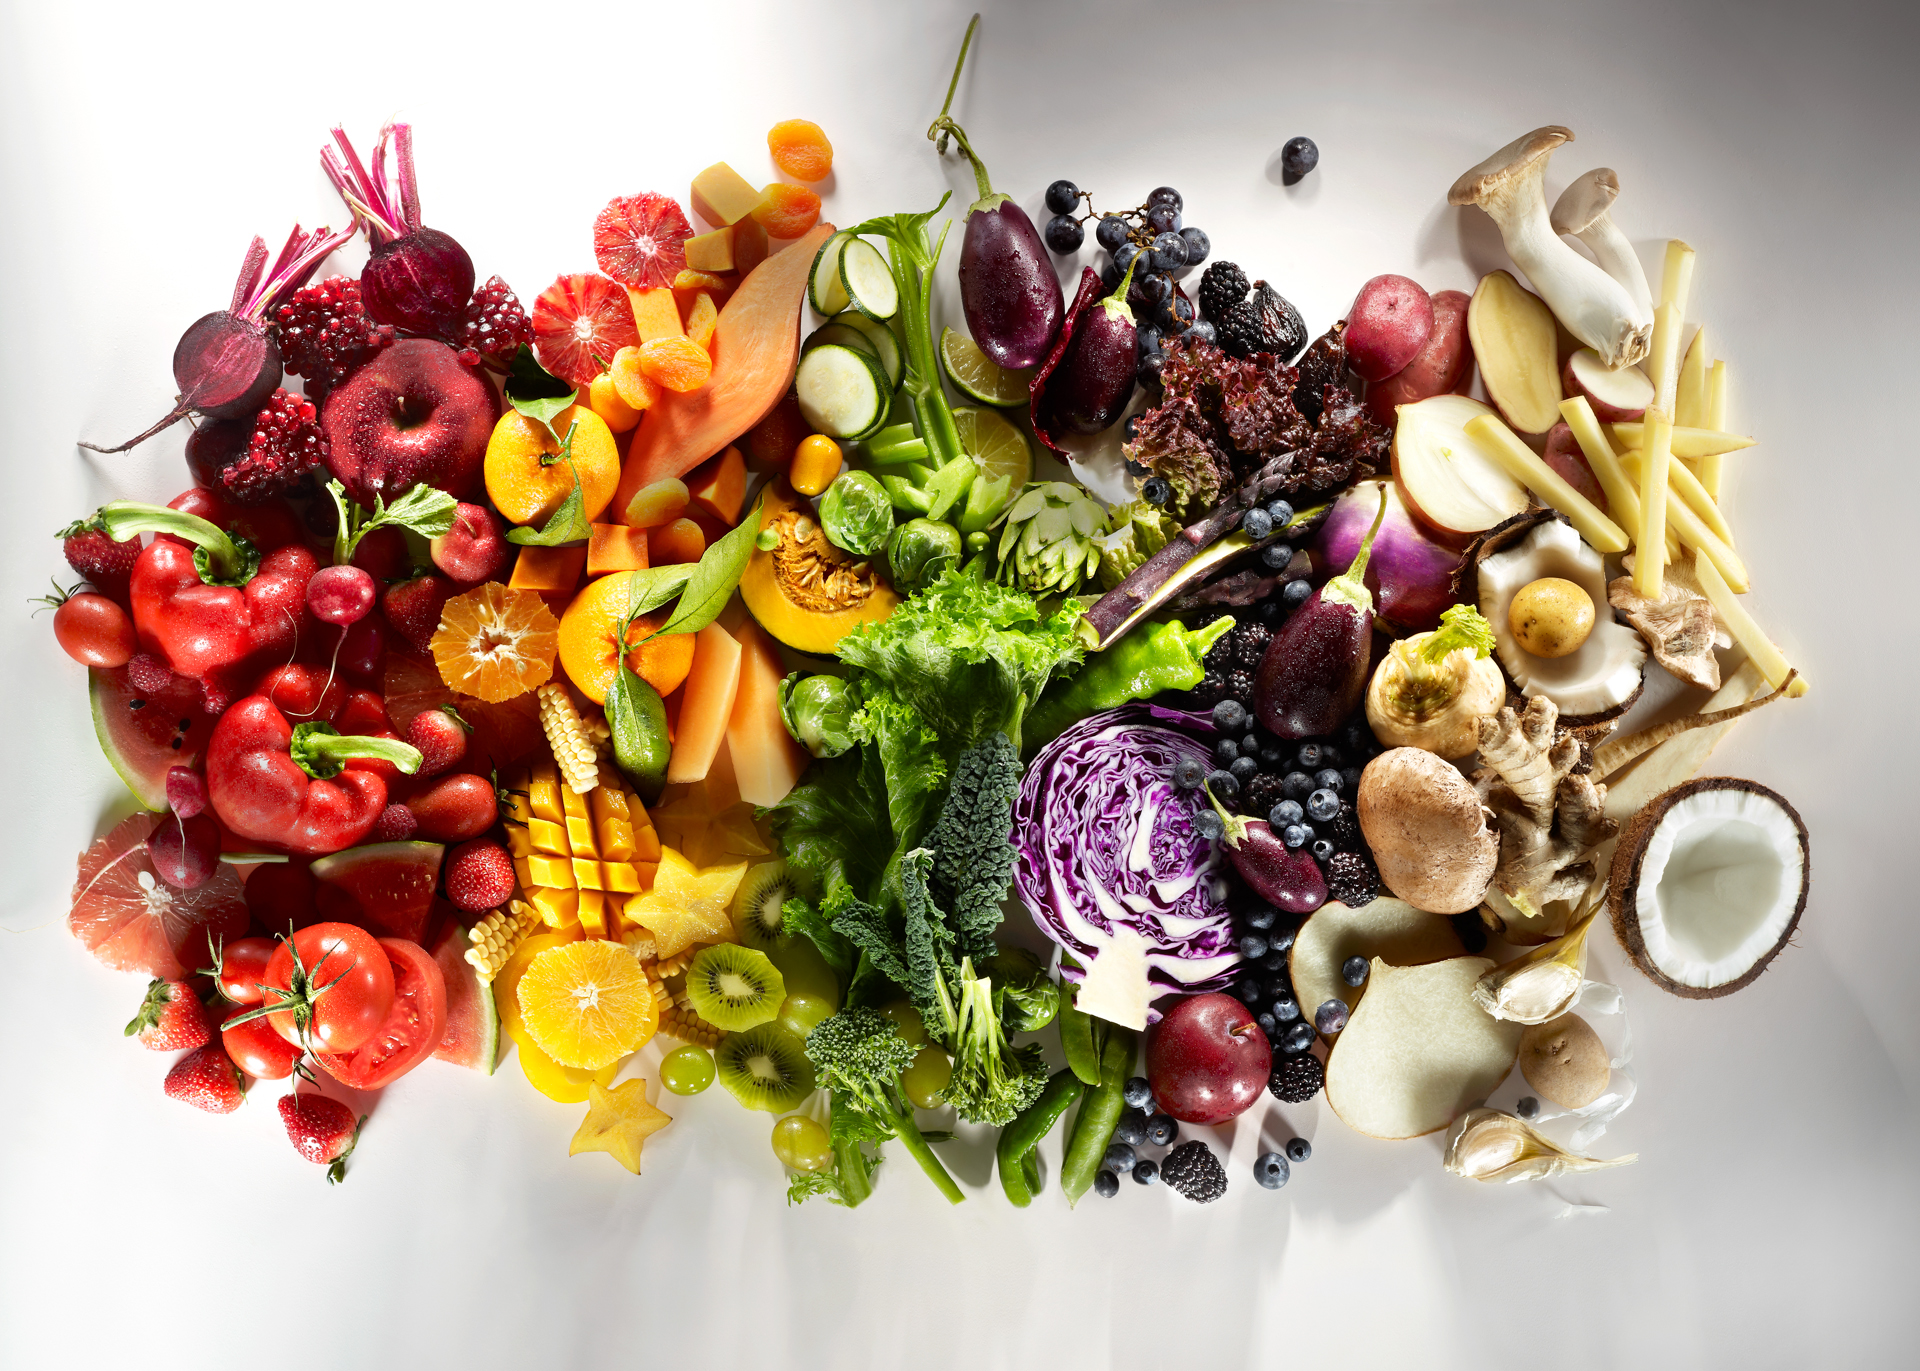 53 Superfoods That Better Your Body Superfood List